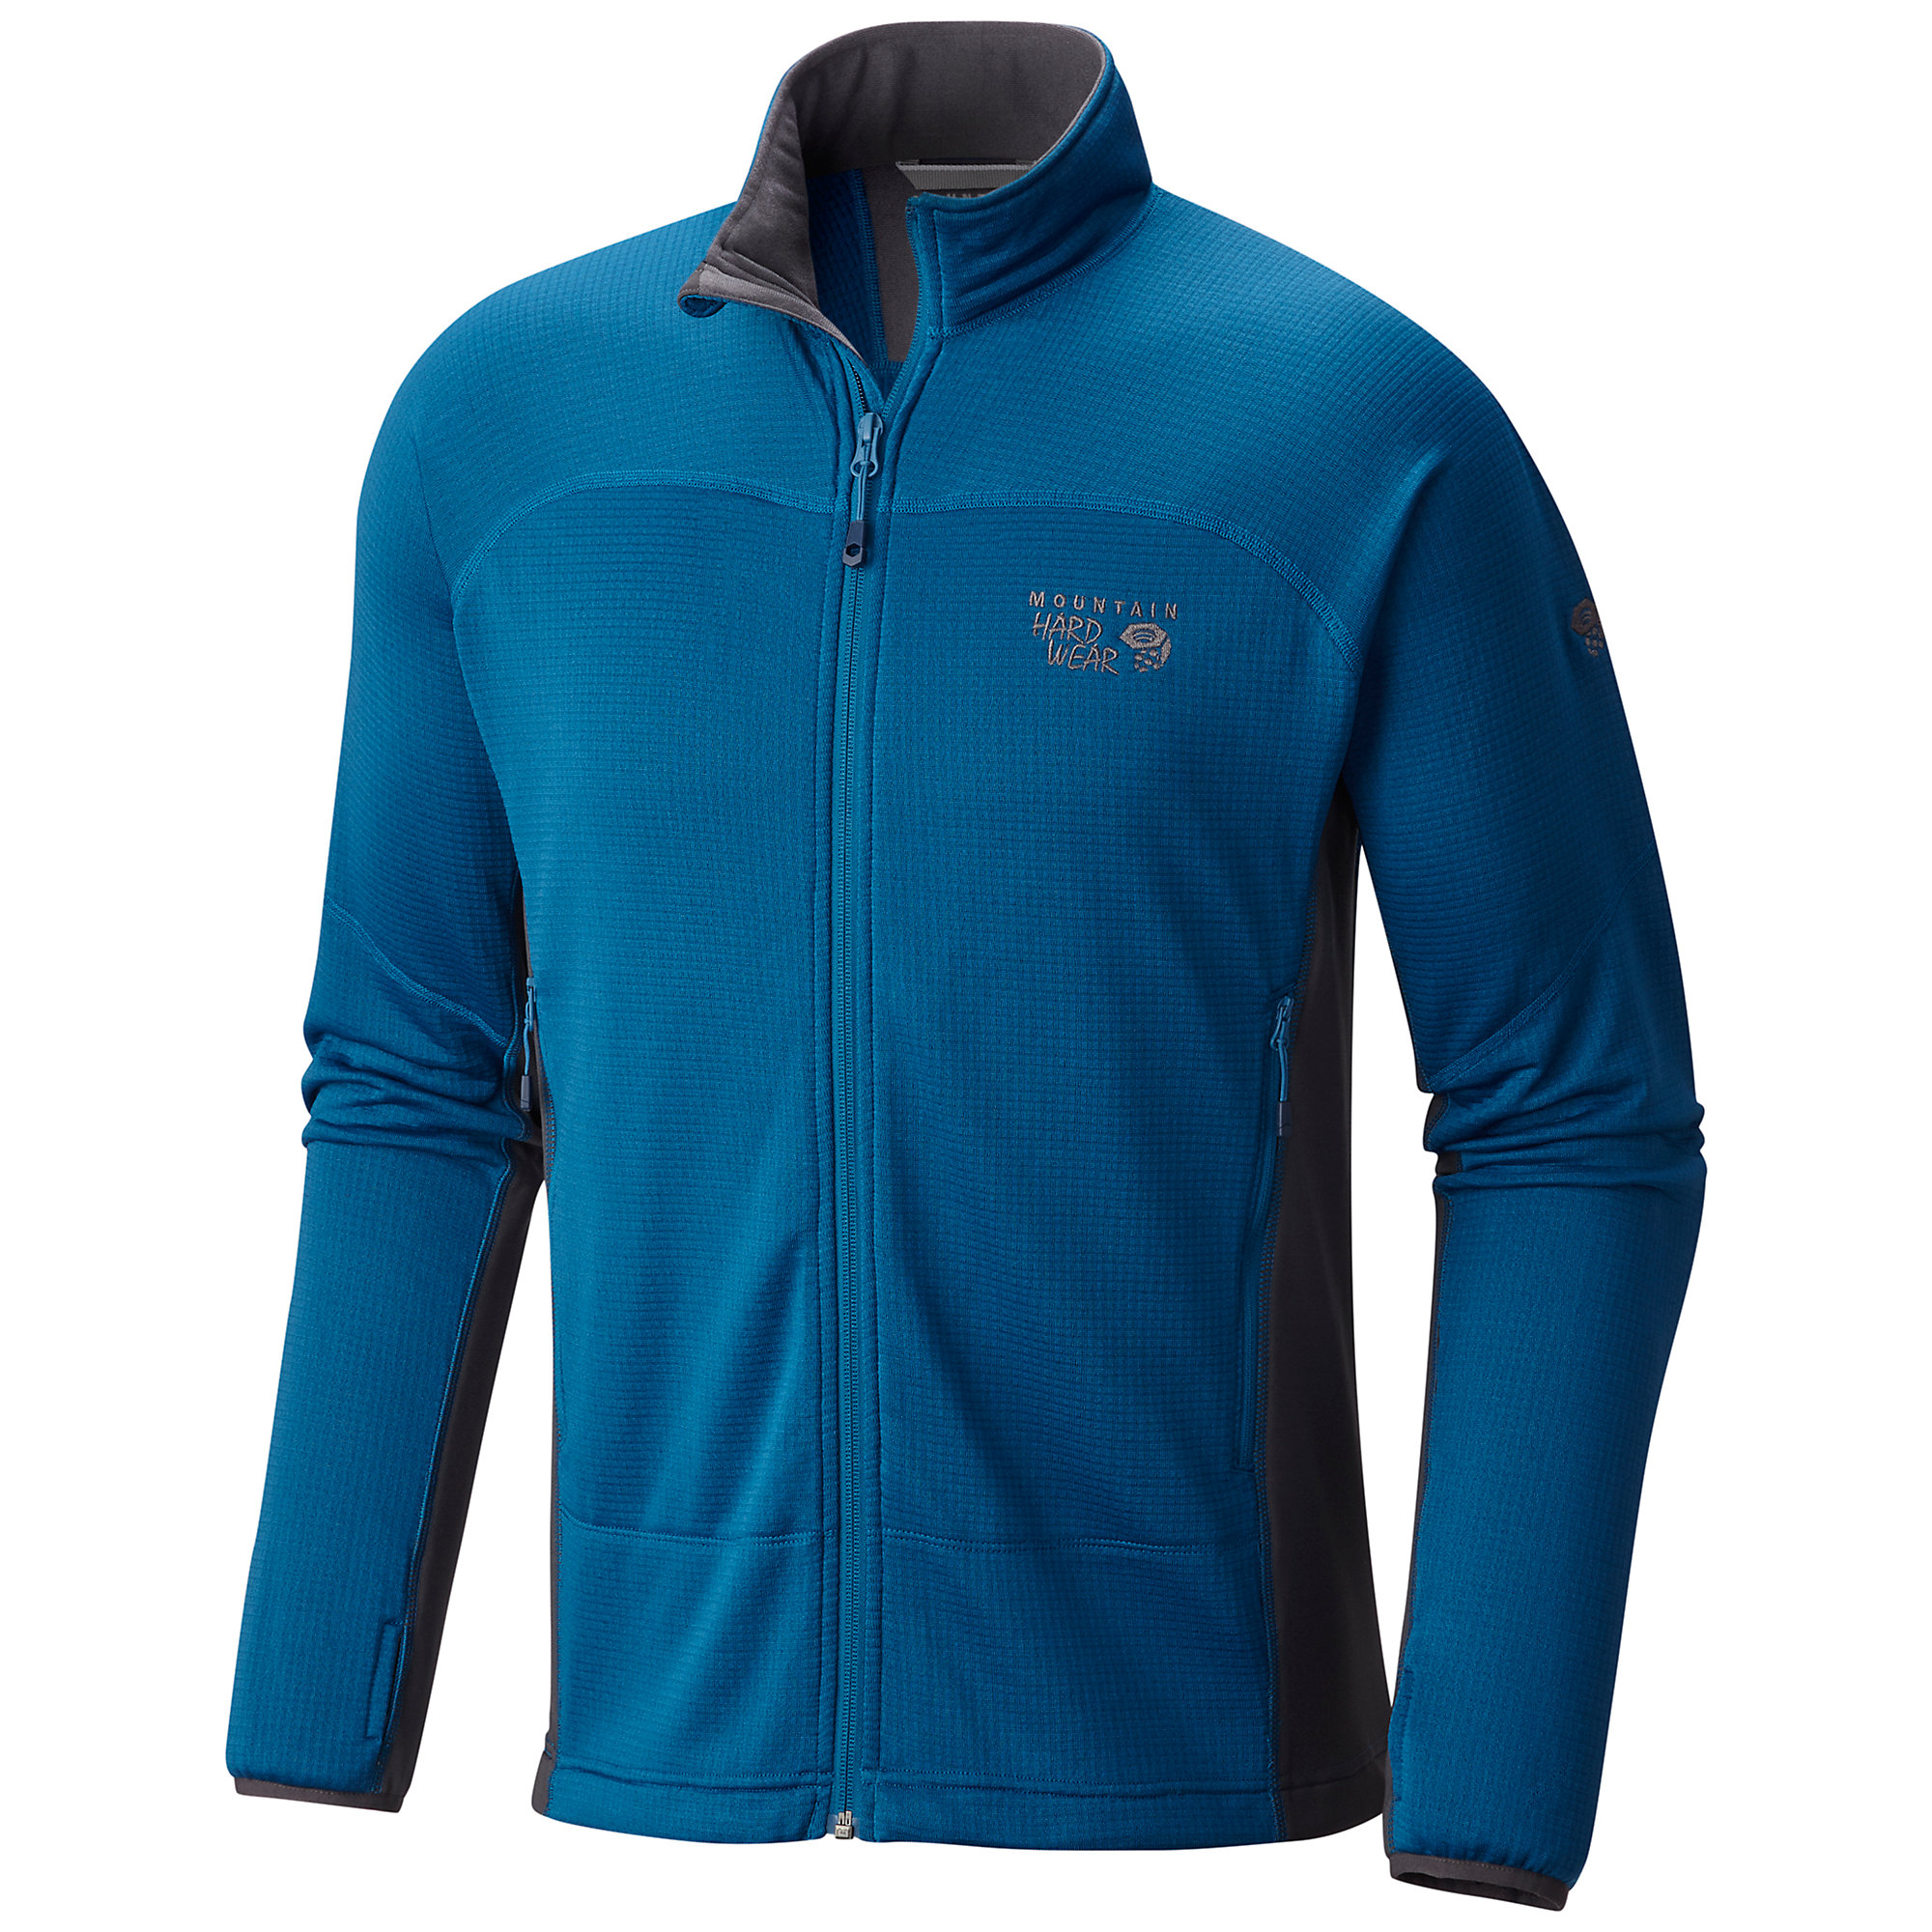 Mountain Hardwear Desna Jacket